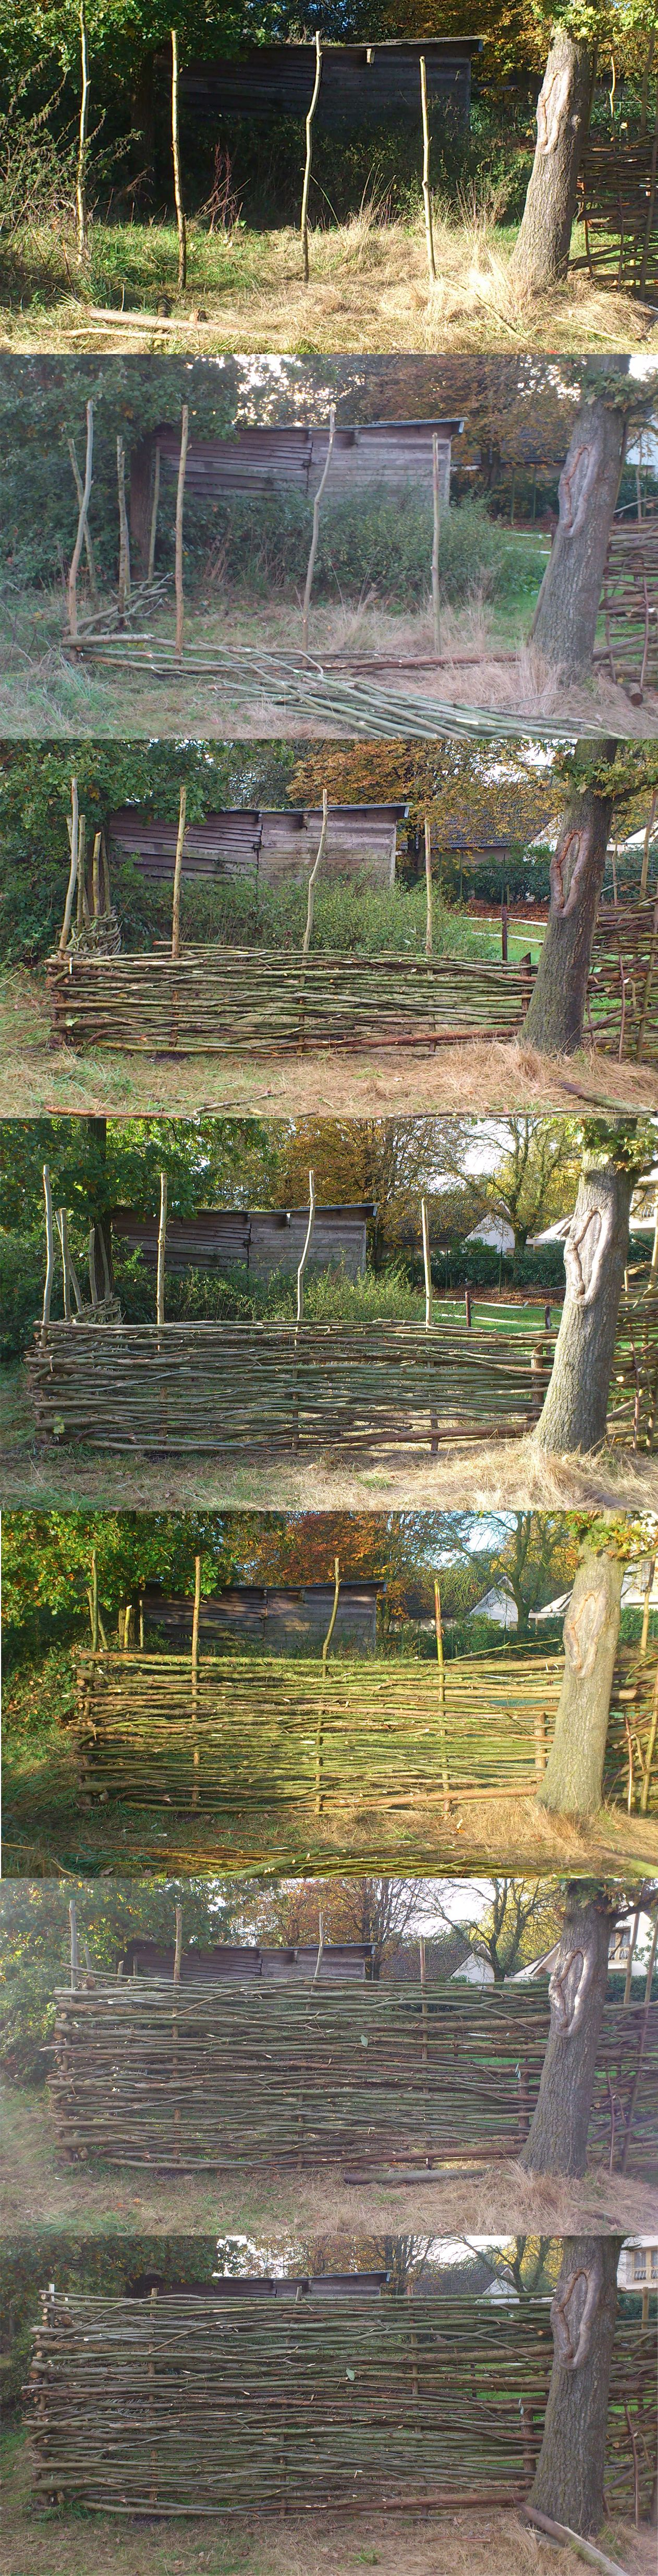 homemade wattle fence DIY Outside decorating